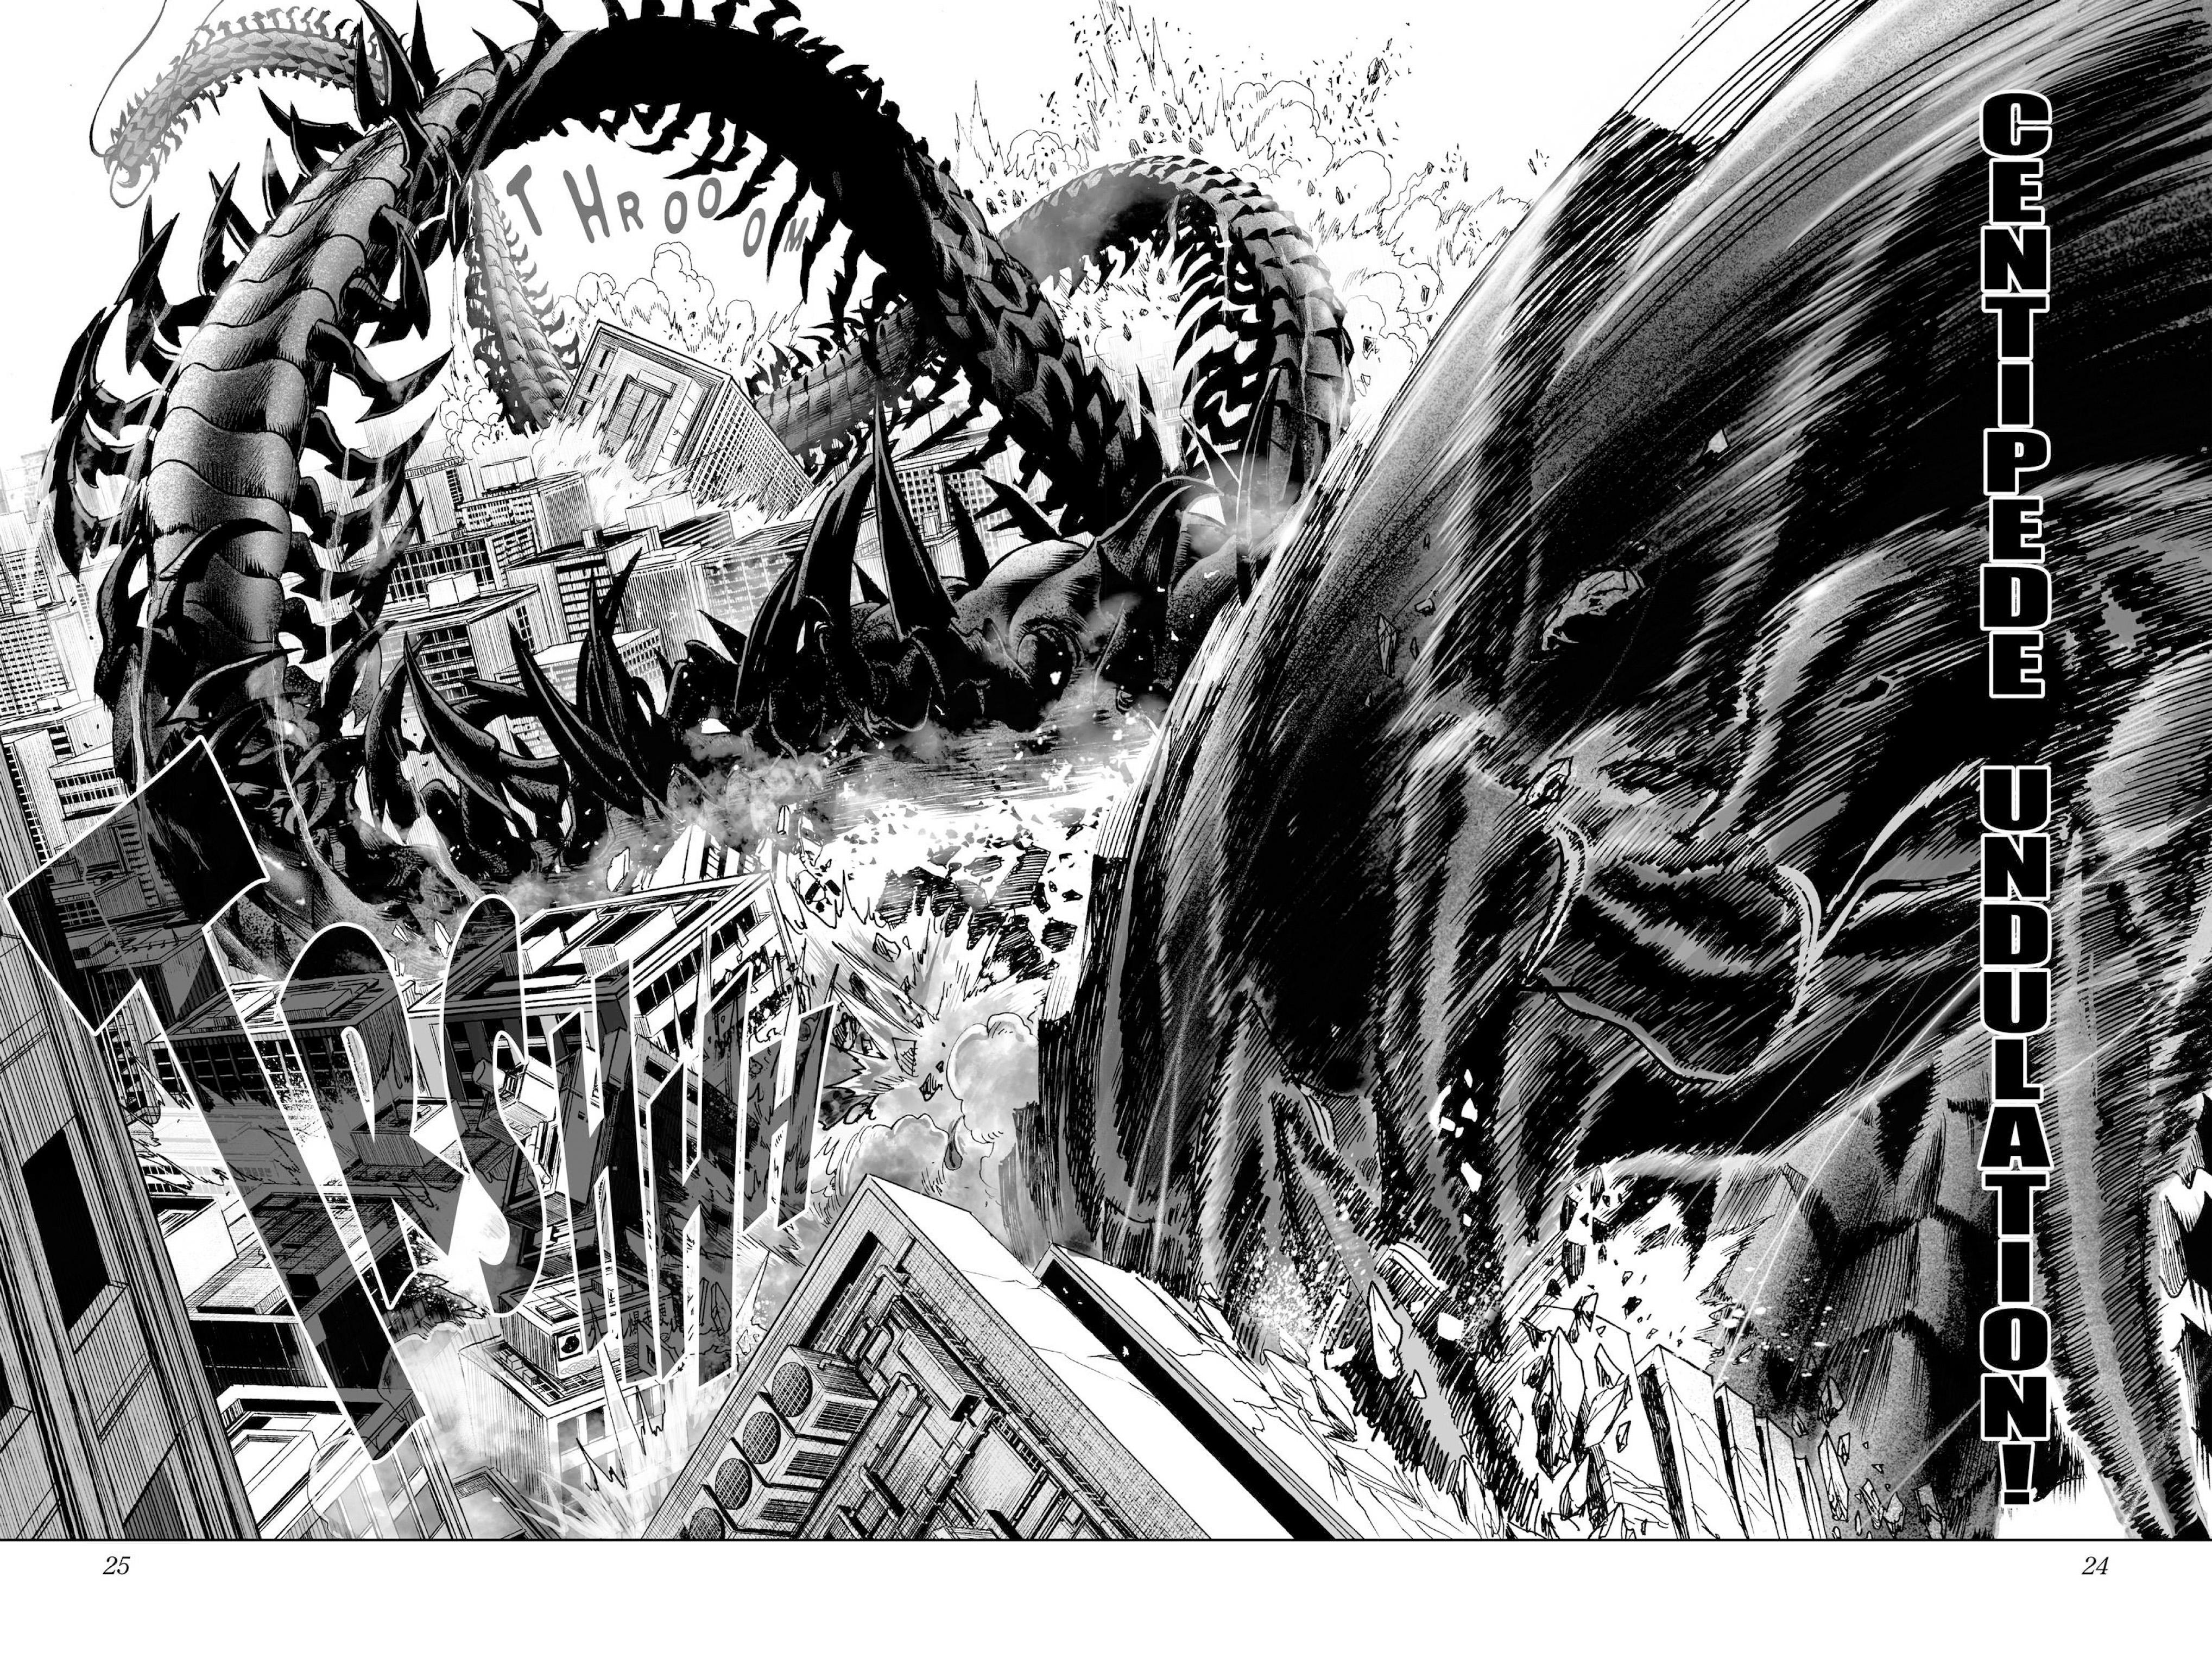 One-Punch Man V11 review